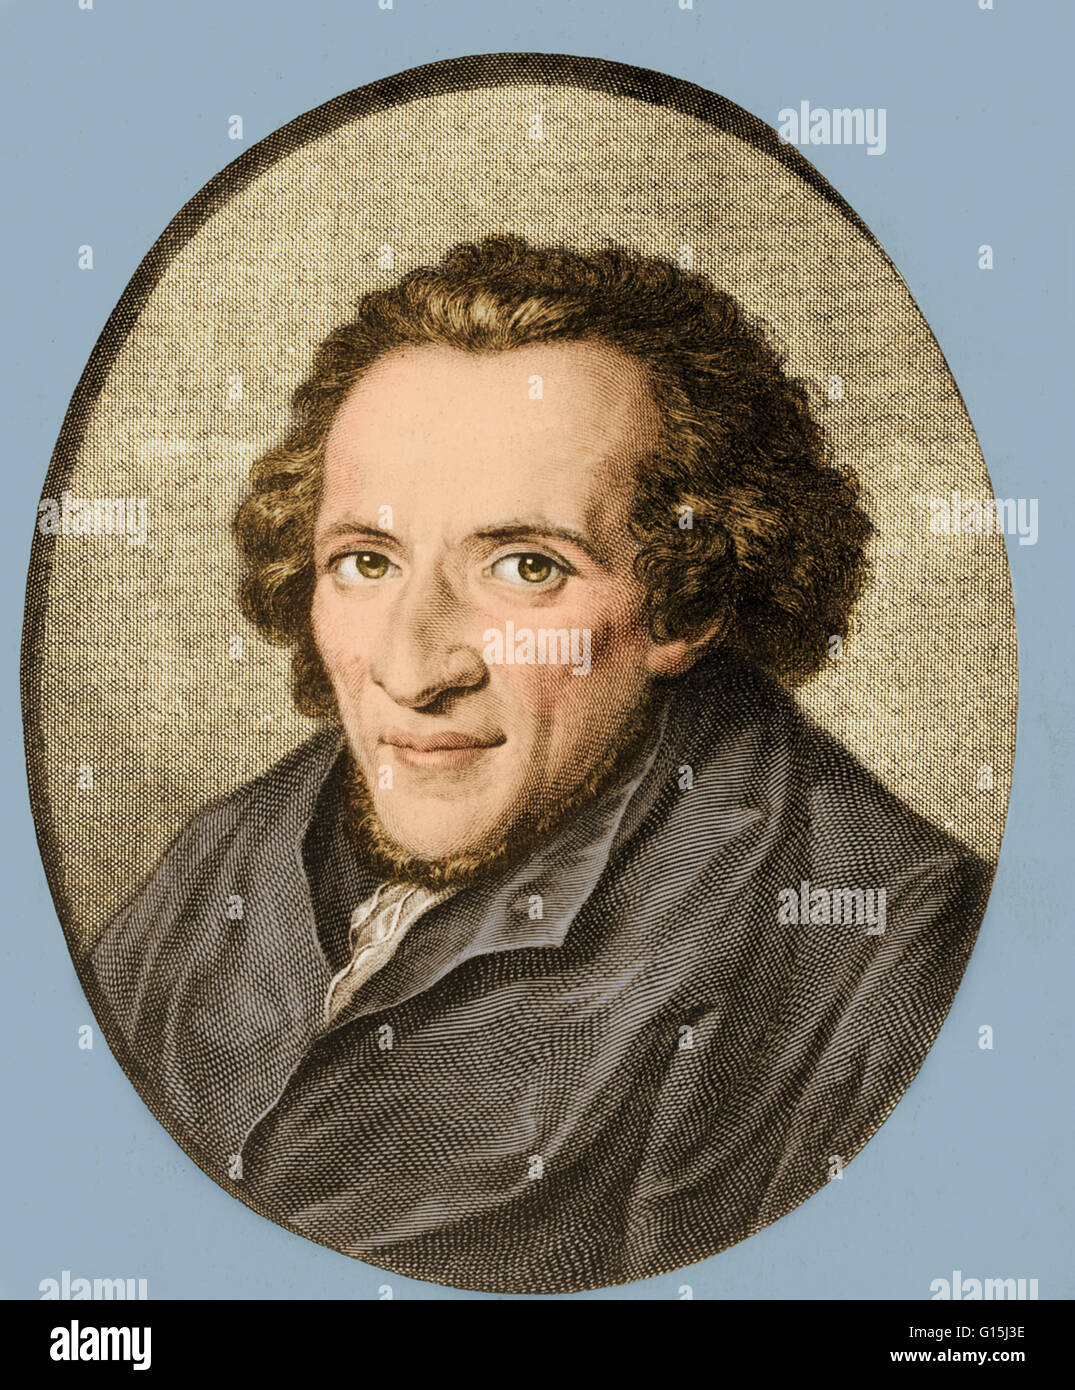 Moses Mendelssohn (1729-86), a German Jewish philosopher and theological writer. He ushered in the movement called - Stock Image